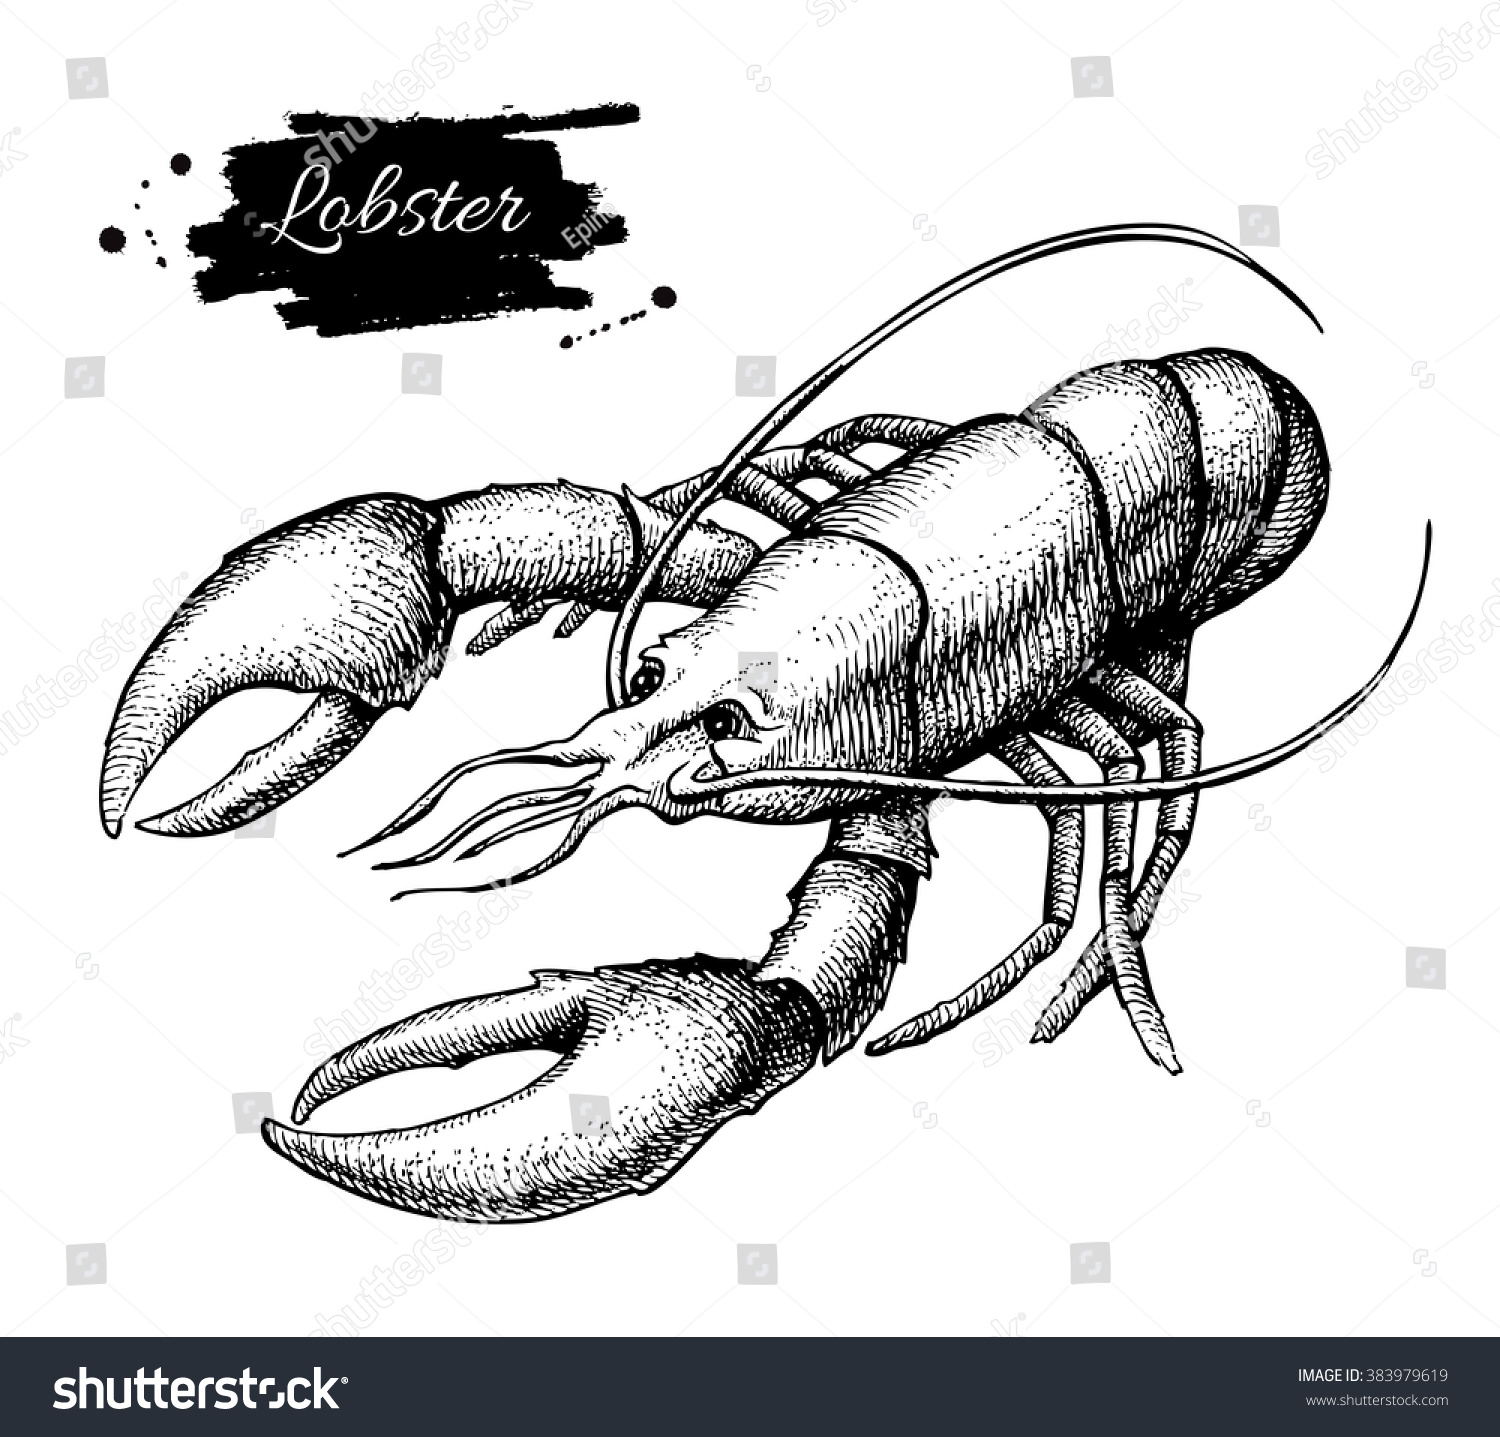 Uncategorized Lobster Drawings vector vintage lobster drawing hand drawn stock 383979619 monochrome seafood illustration great for menu poster